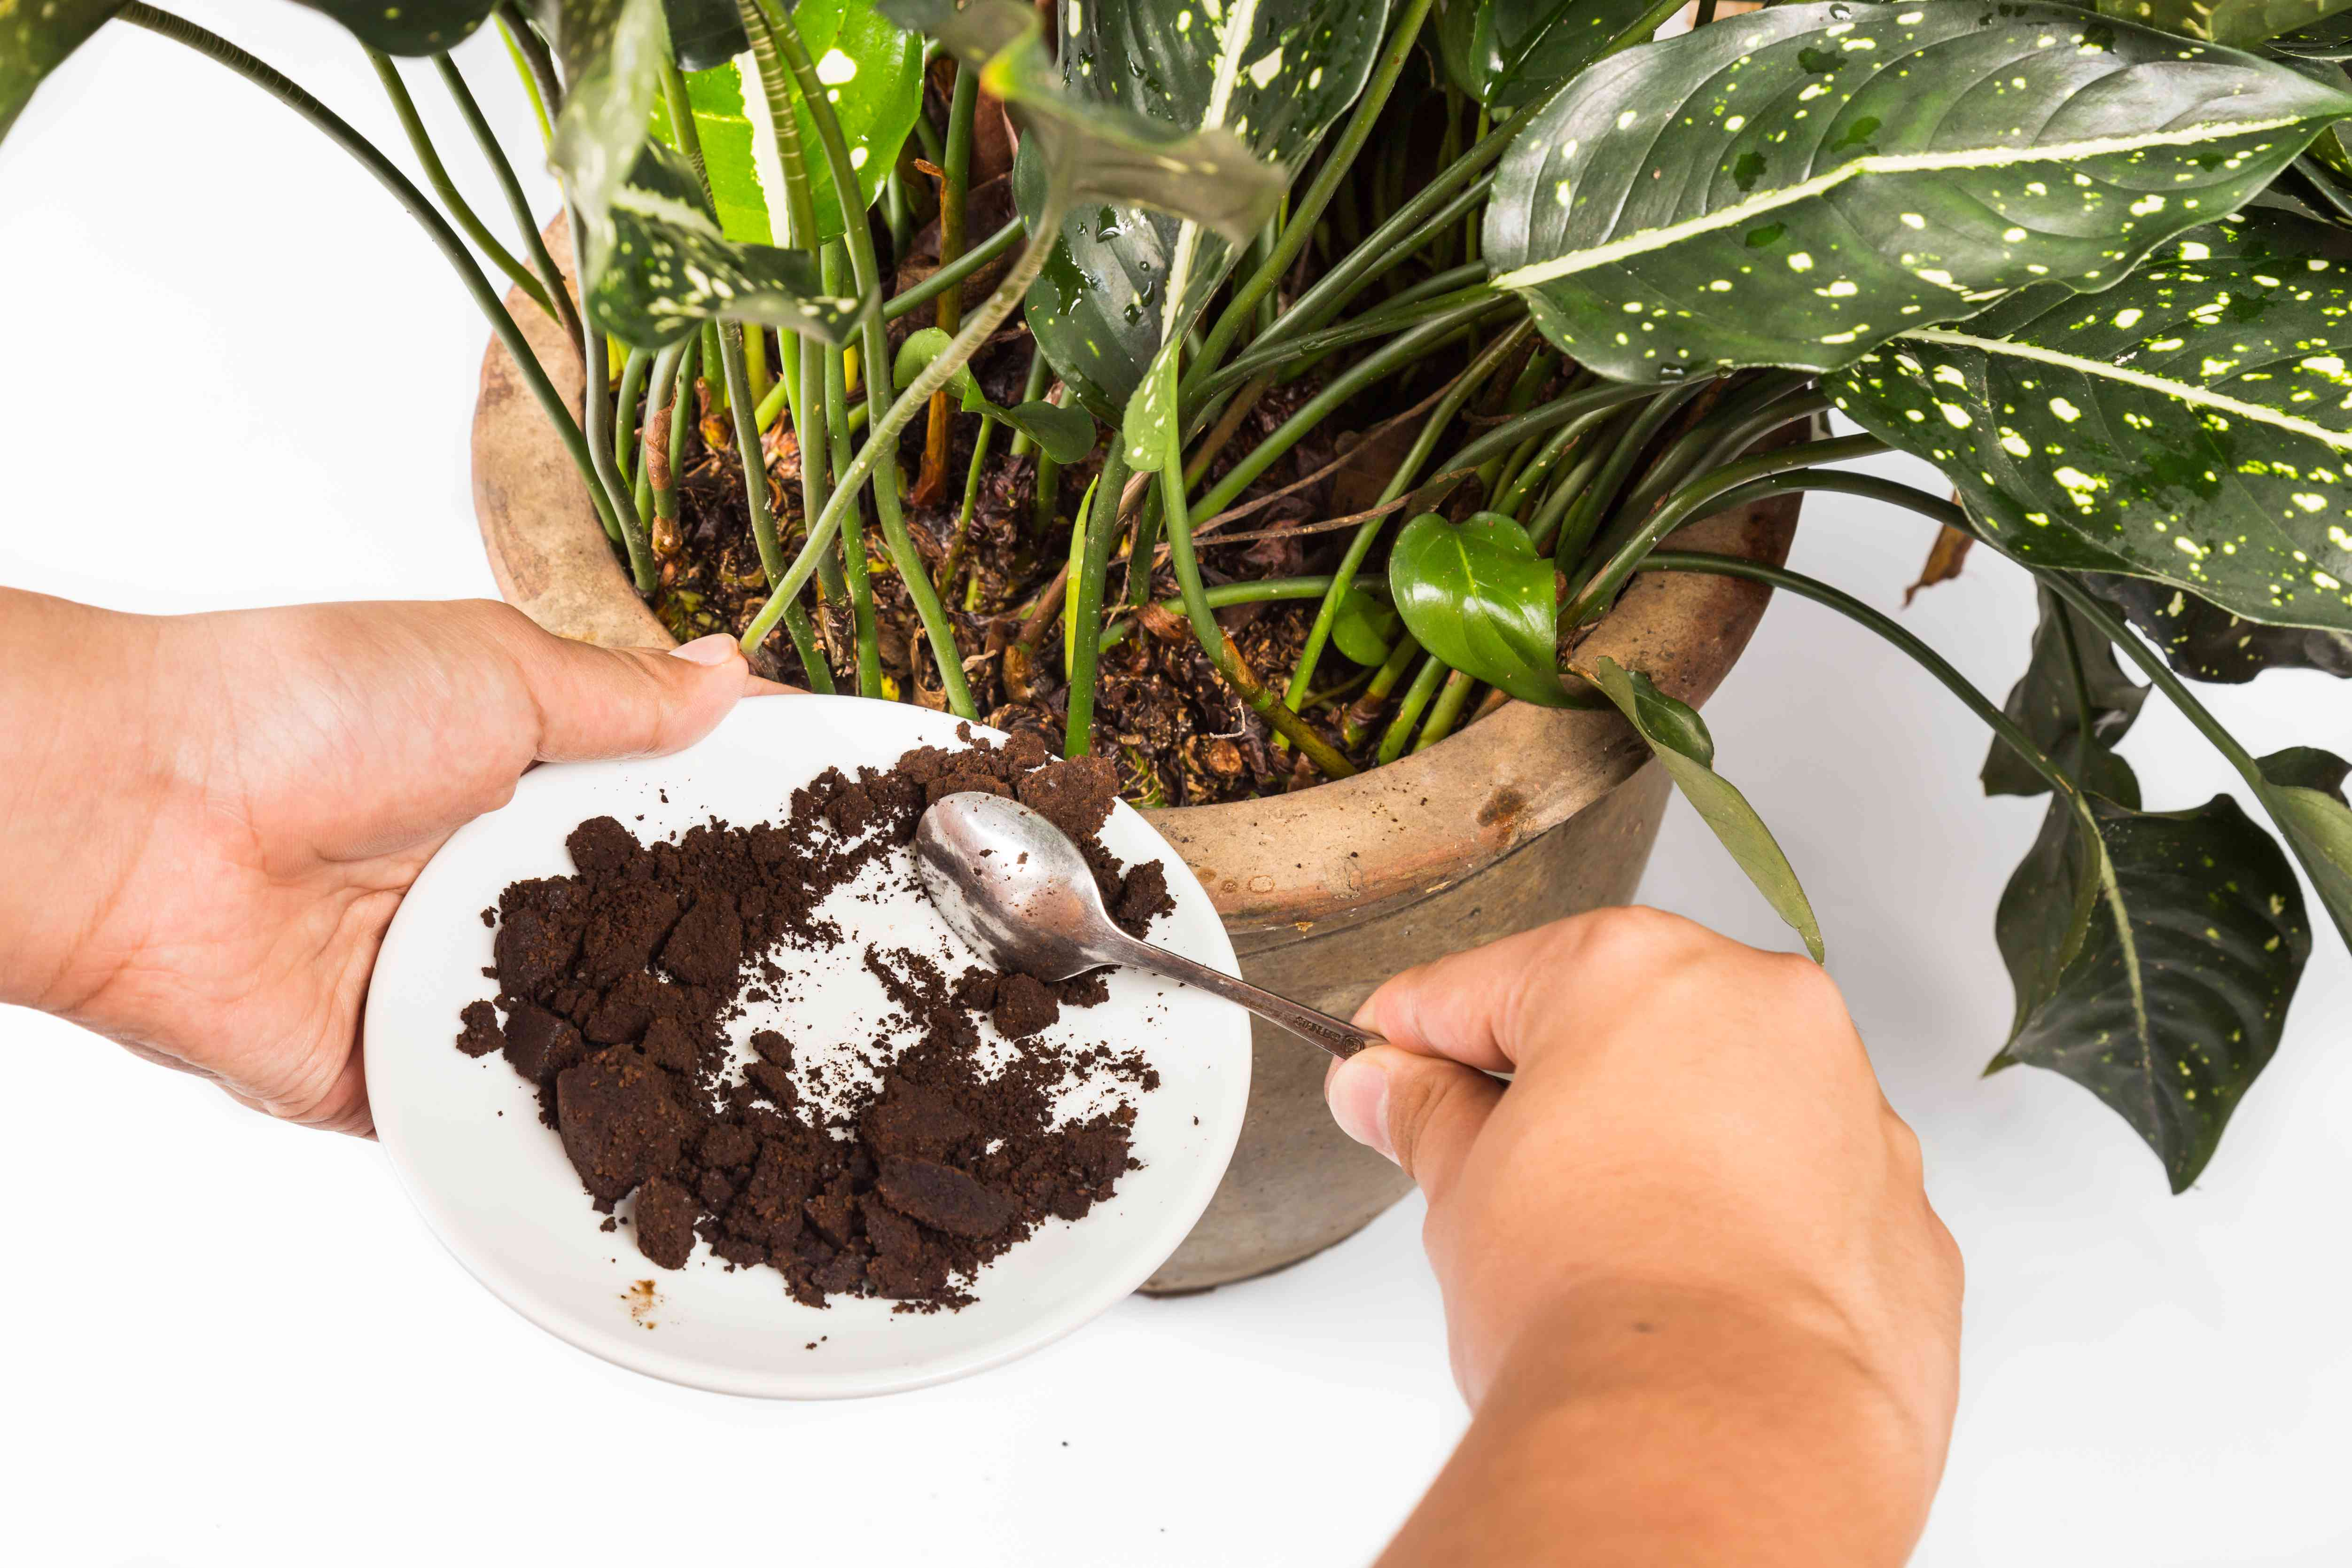 Male hands spooning coffee grounds into potted plant